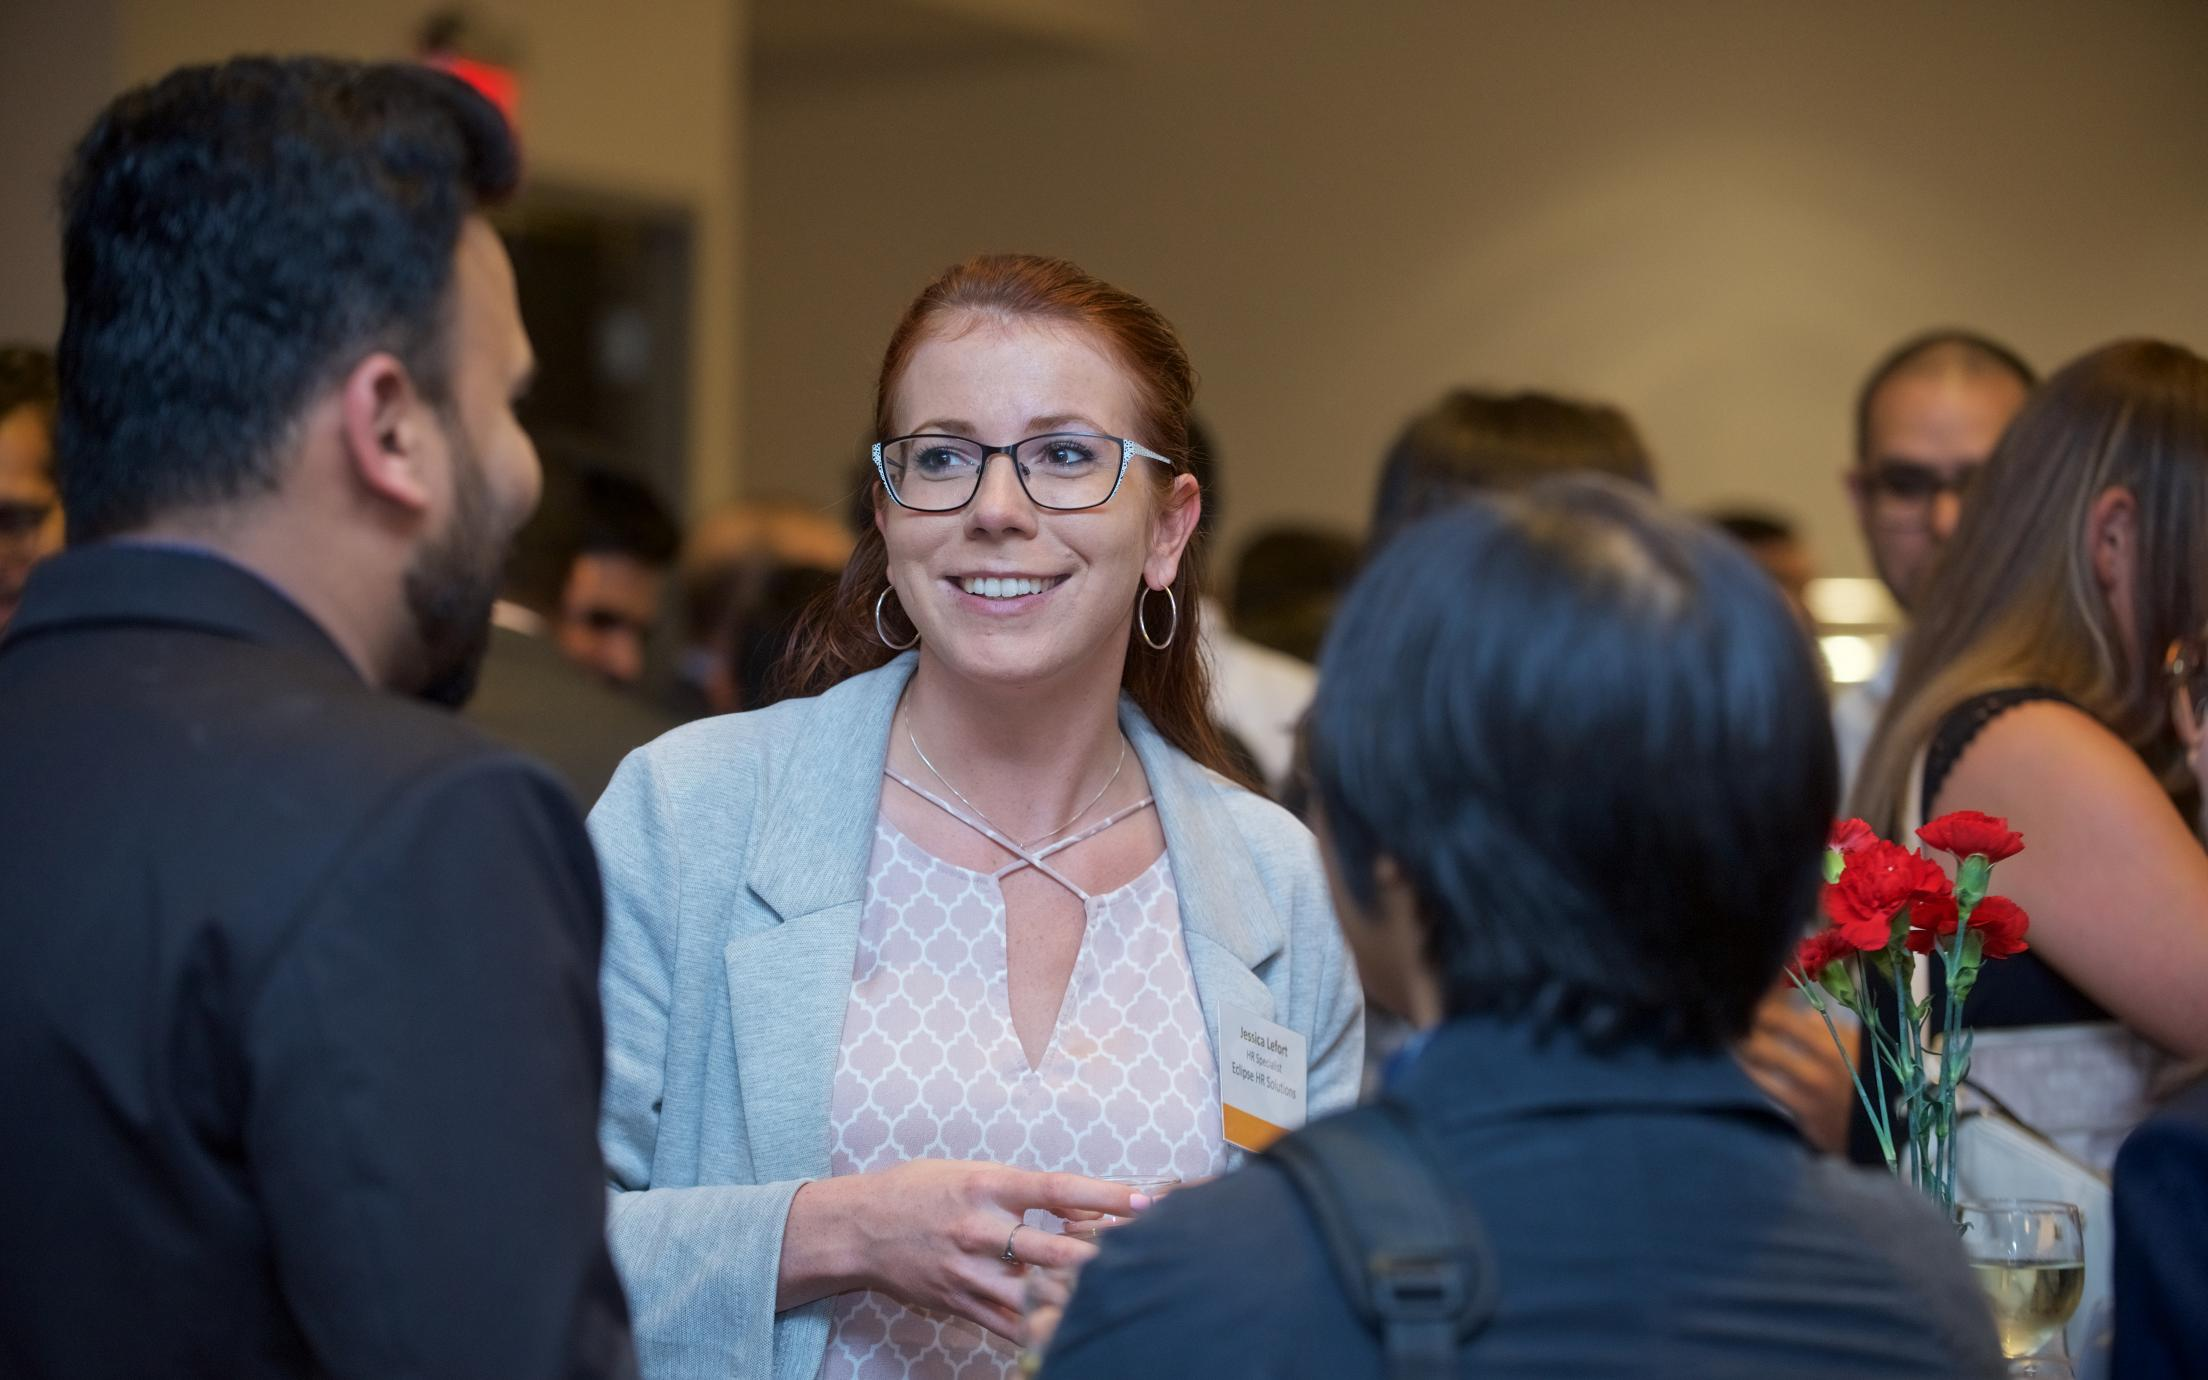 An employer talking to students at an MBA networking event